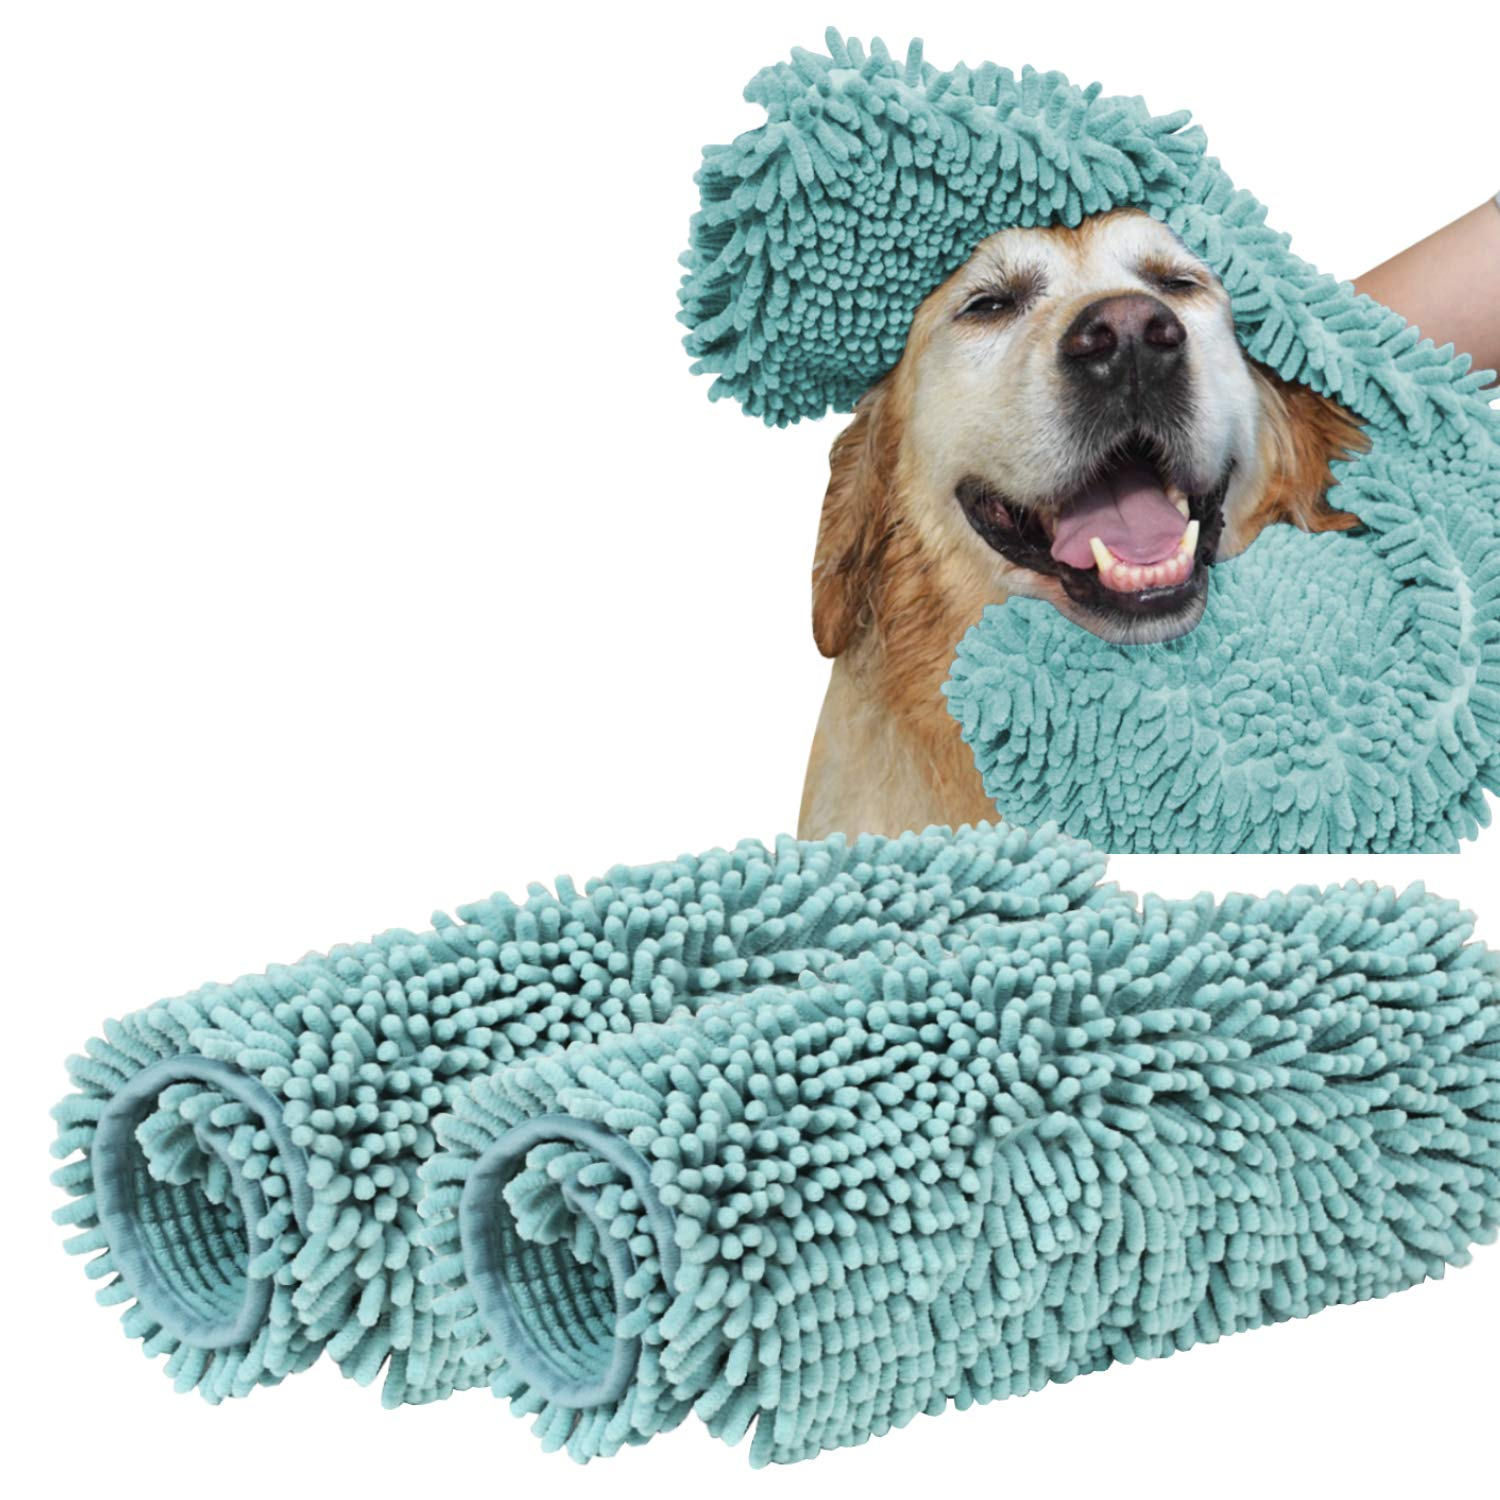 Turquoize Ultra Absorbent Dog Towel Super Shammy with Hand Pockets Microfiber Chenille Dog Bath Dry Towel Washable Grooming Animal Towel Duckshell Blue-2 Pack Size 24'' by 14''